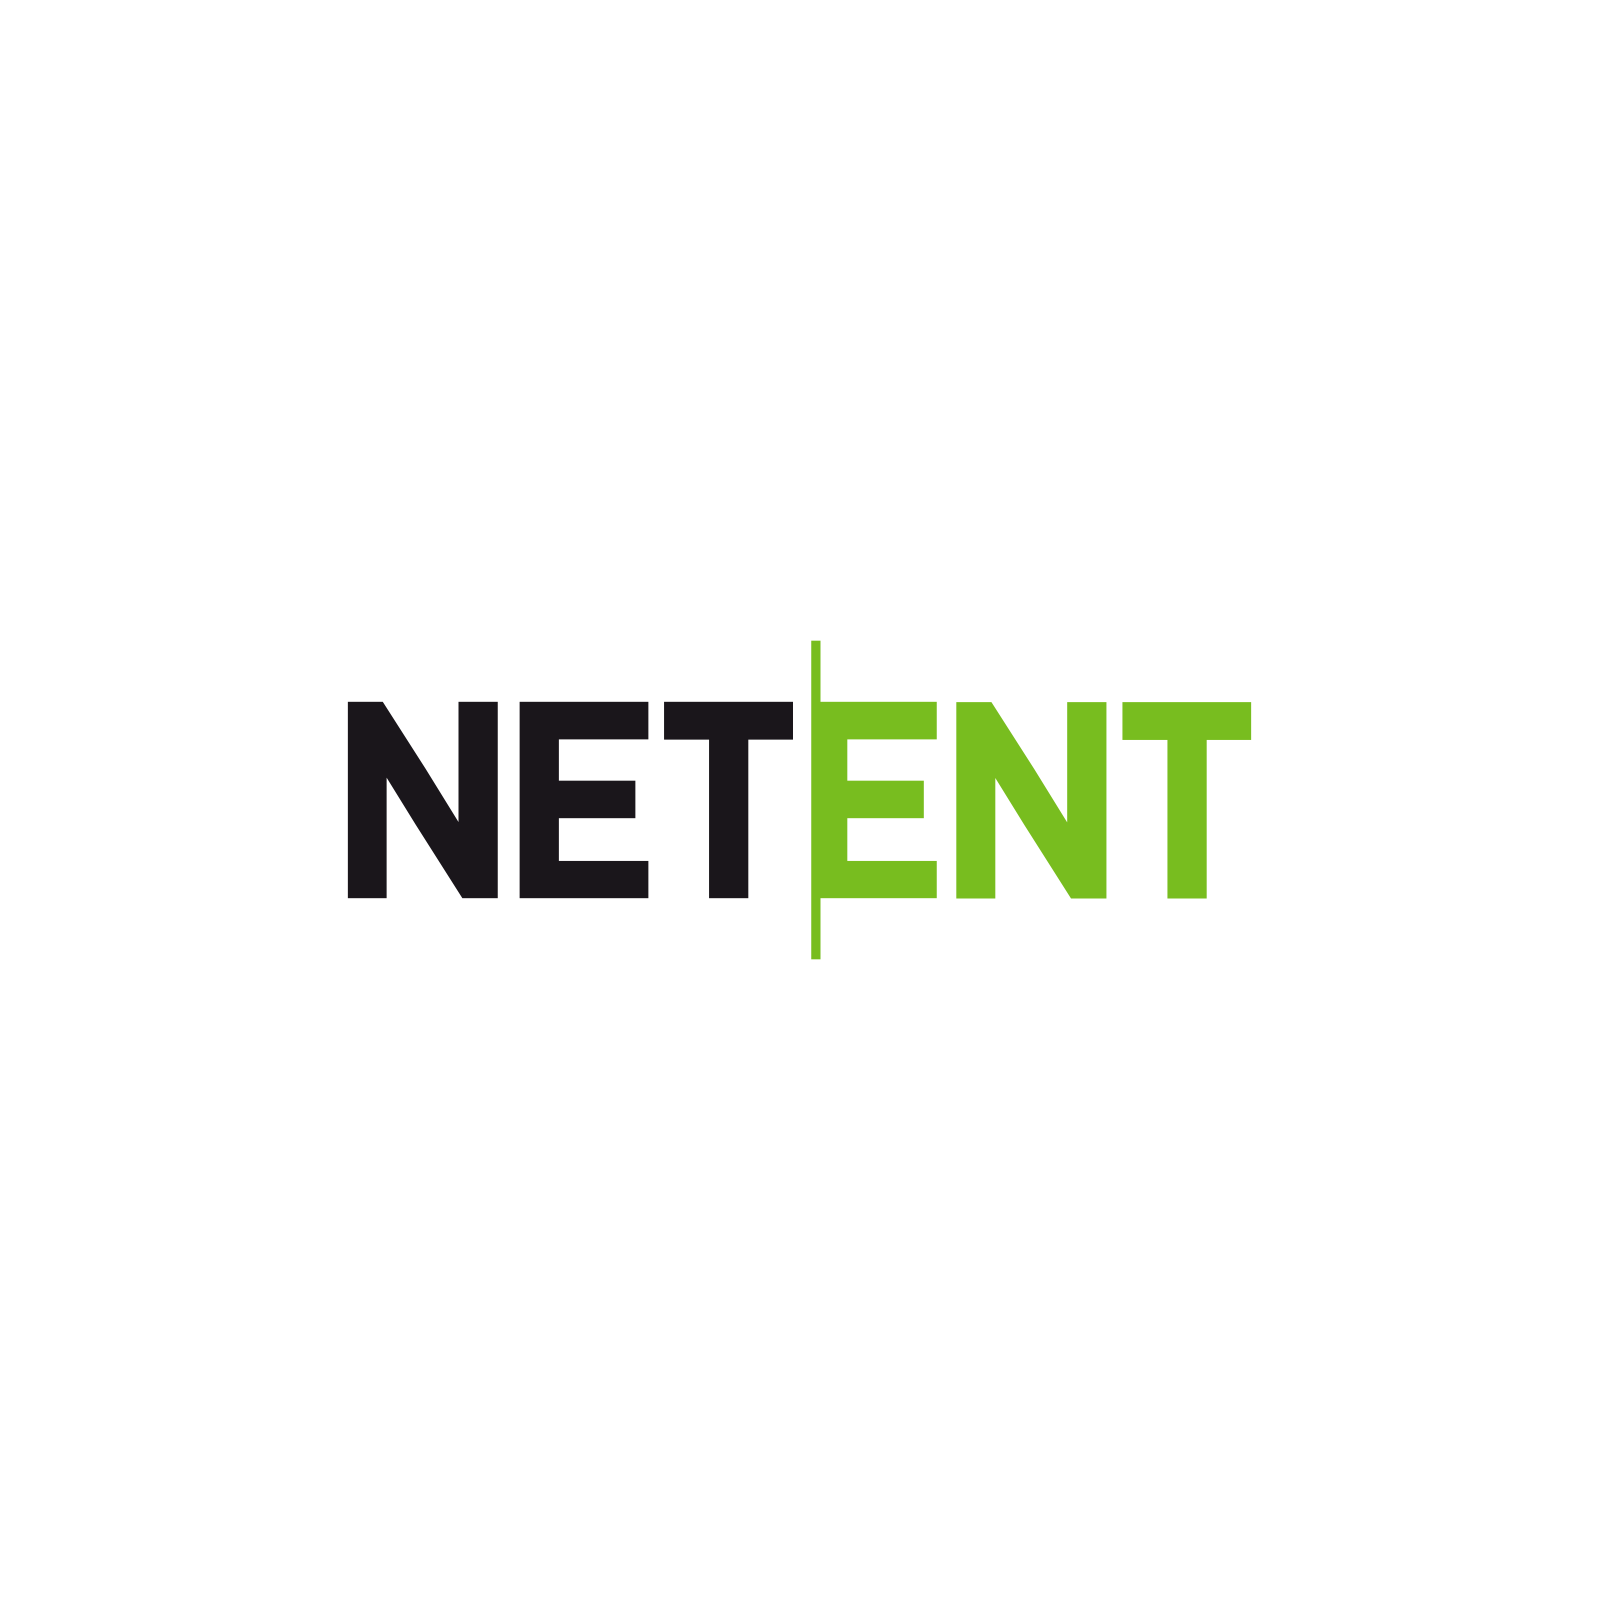 NetEnt Logo on white background